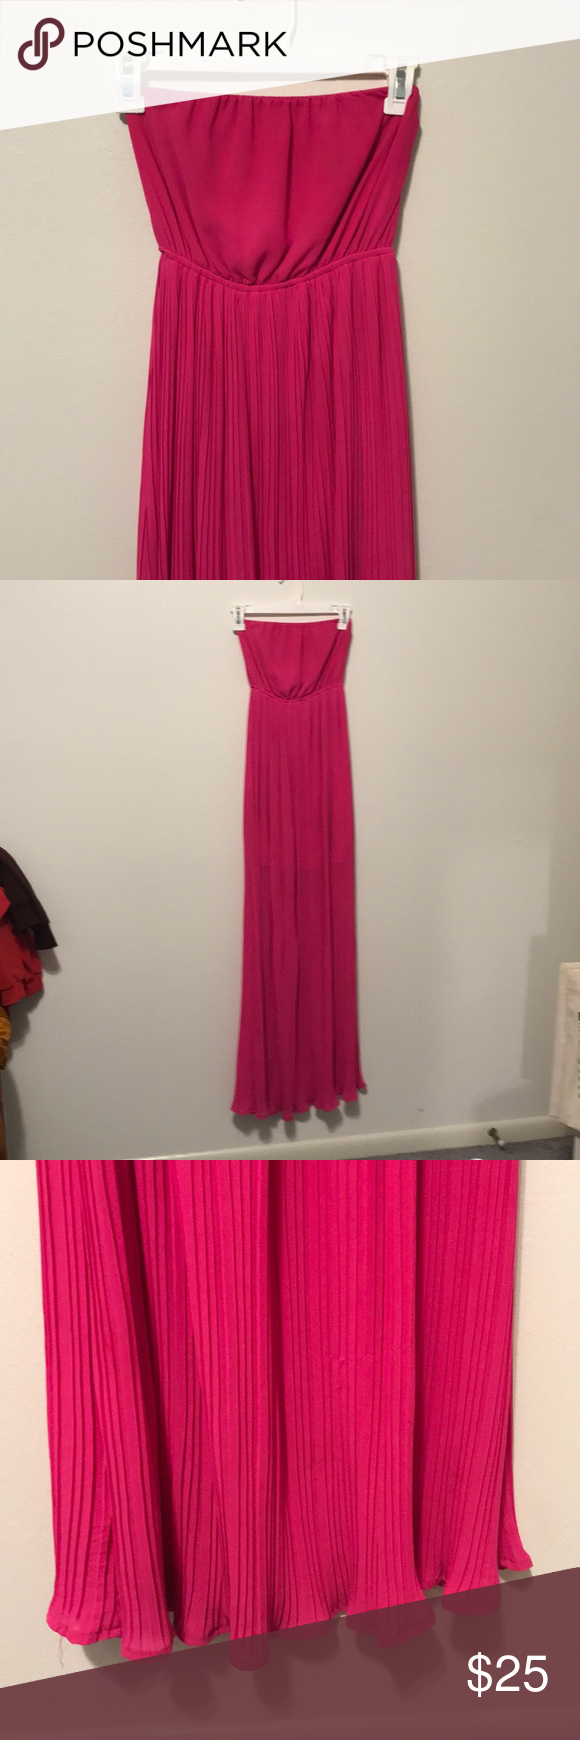 Hot Pink Fuschia Pleated Maxi Dress Stunning Vibrant Color Only Worn Once For A Summer Wedding Inside Line Pleated Maxi Dress Maxi Dress Ya Los Angeles Dress [ 1740 x 580 Pixel ]